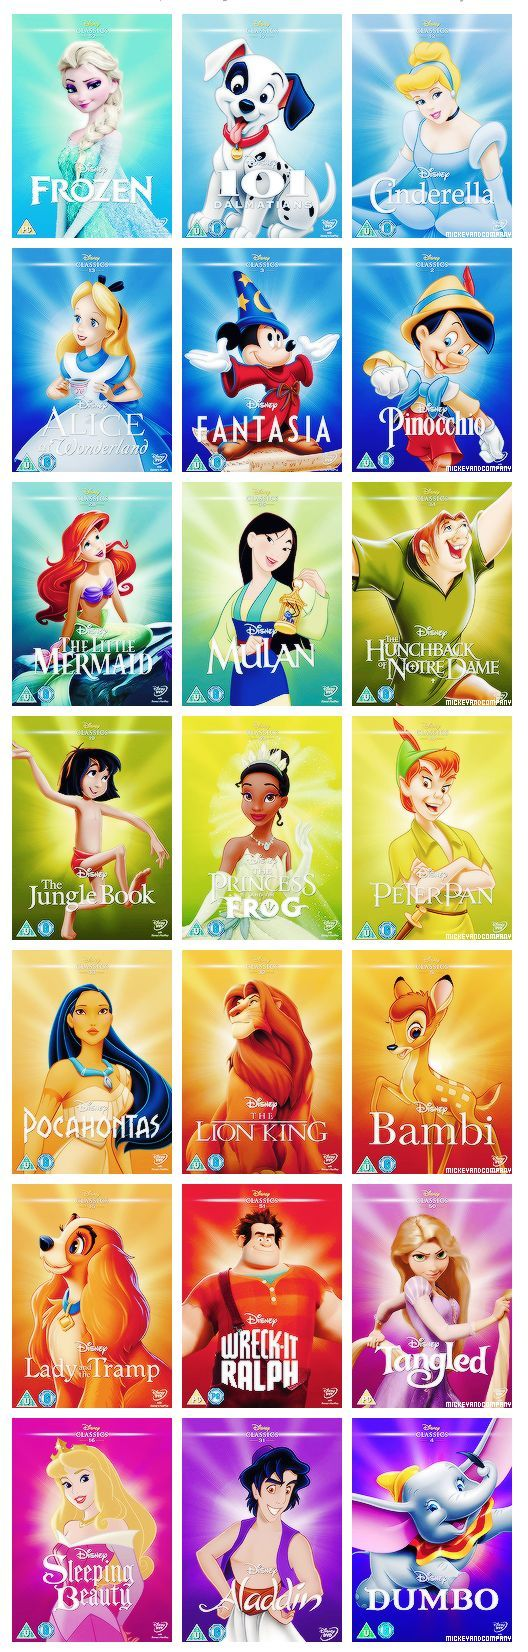 See more HERE: https://www.sunfrog.com/search/?53507&search=love+dog I love Disney!!<3 but omg Aladdin kinda looks creepy